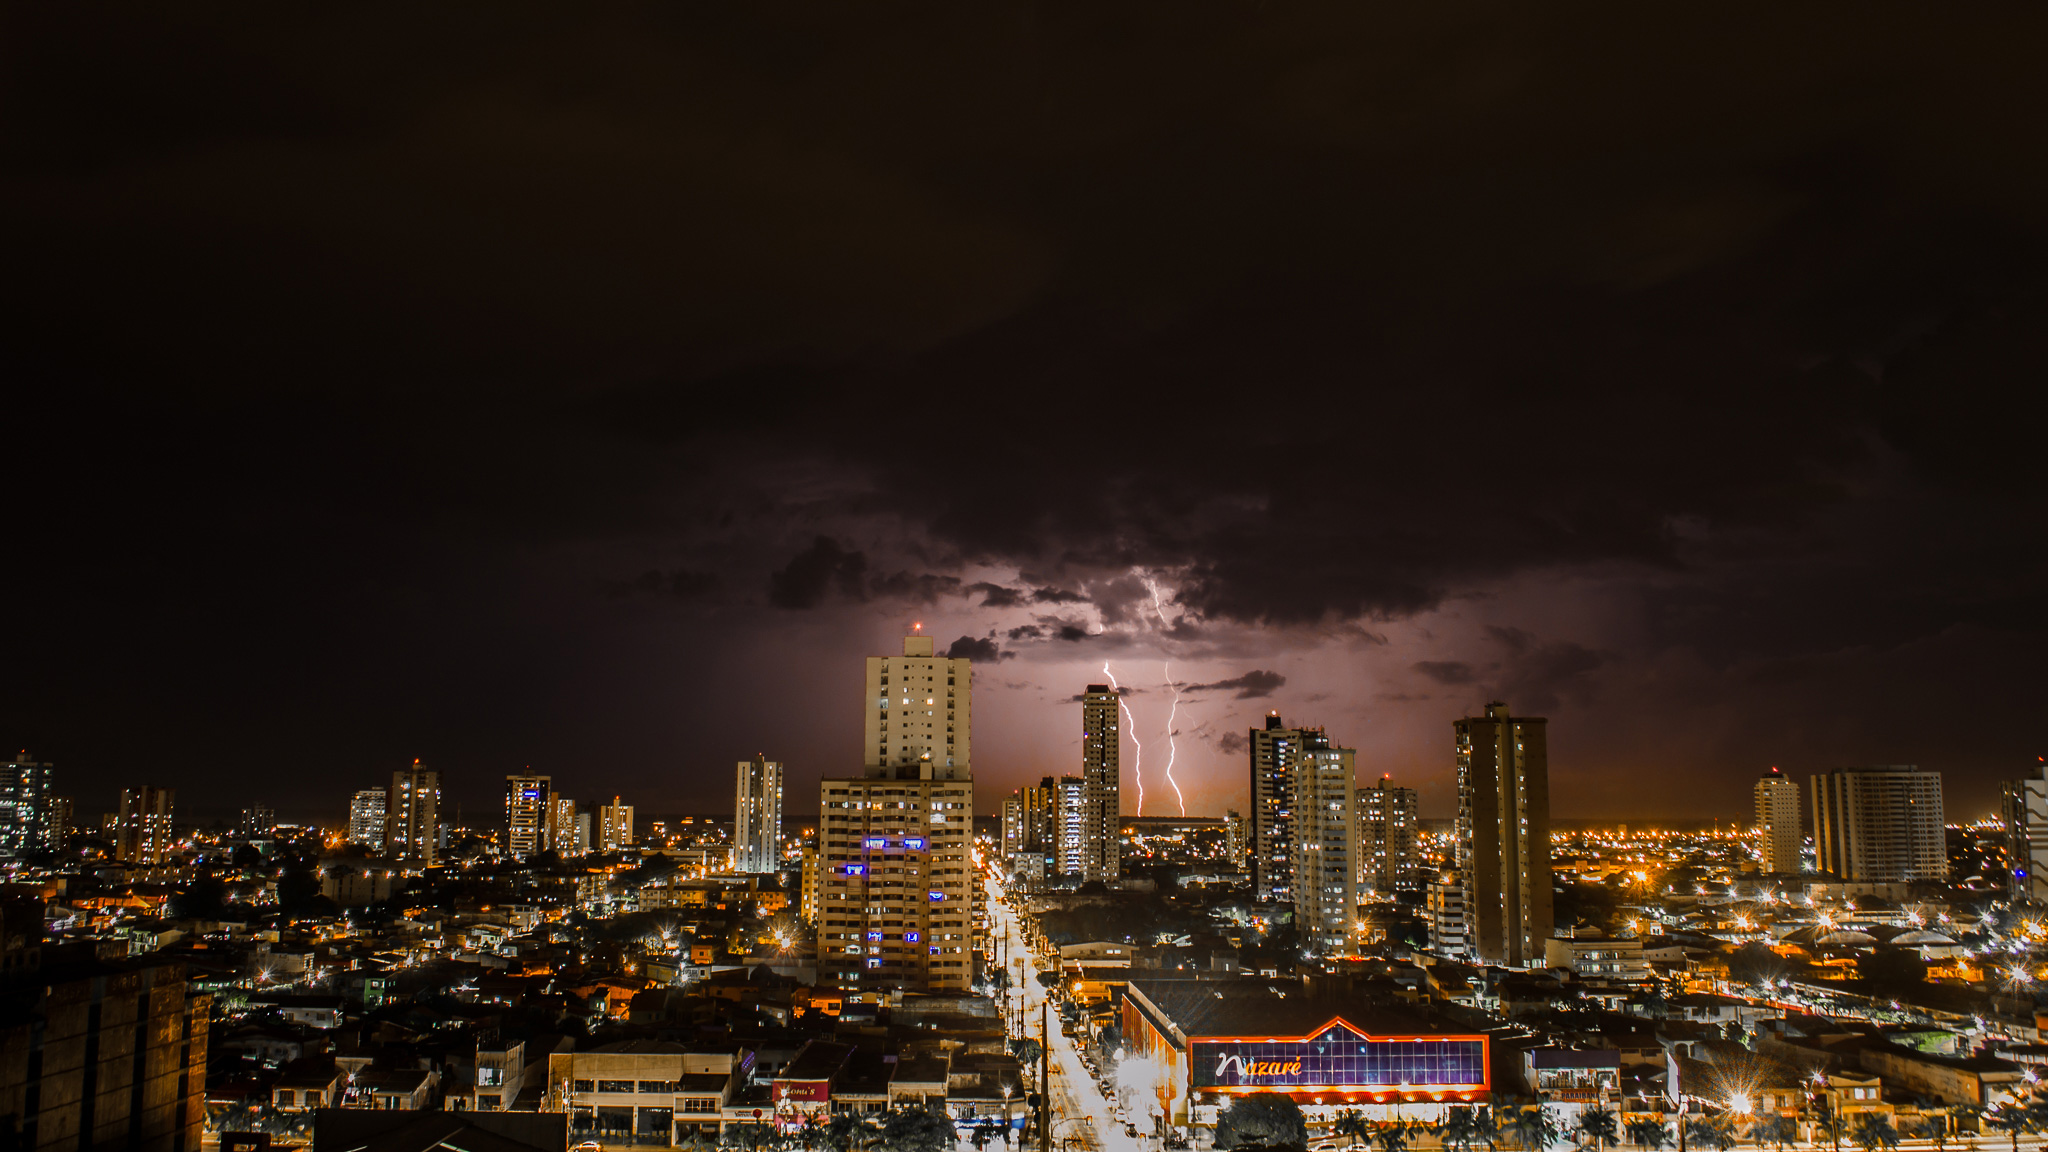 Thunderstorms Above City During Night